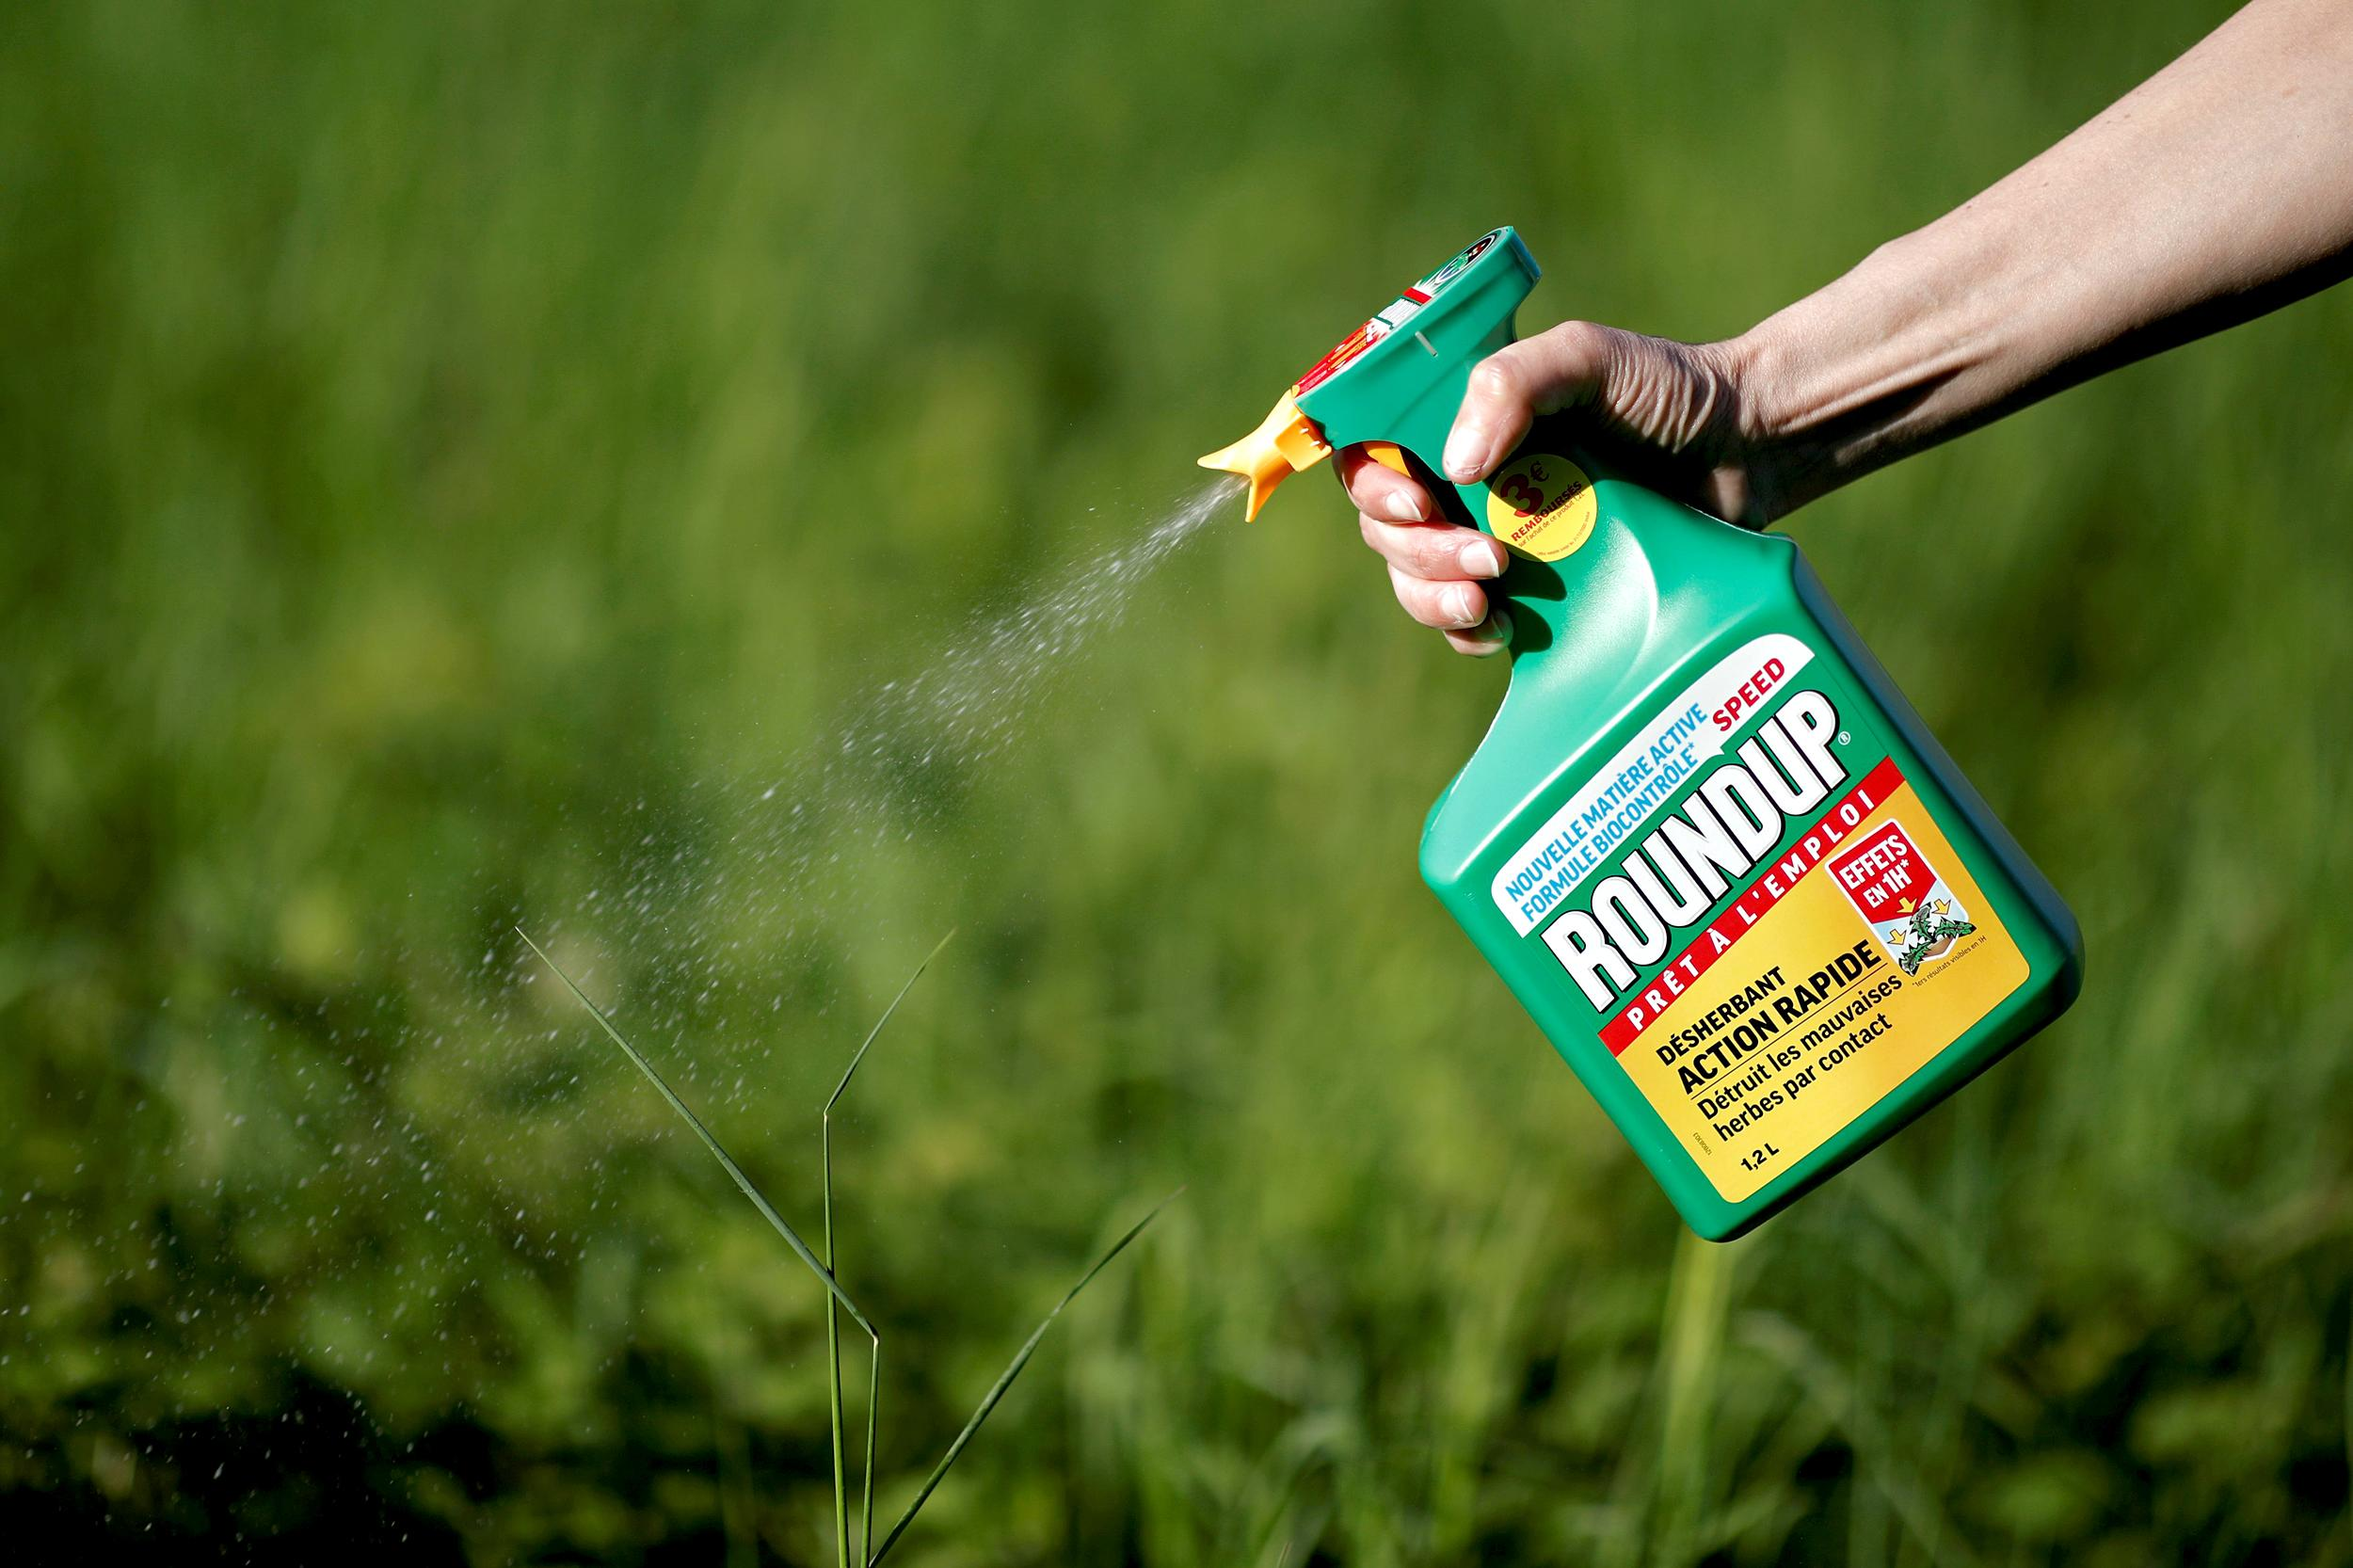 Bayer To Pay More Than $10 Billion To Settle Cancer Lawsuits Over Weedkiller Roundup